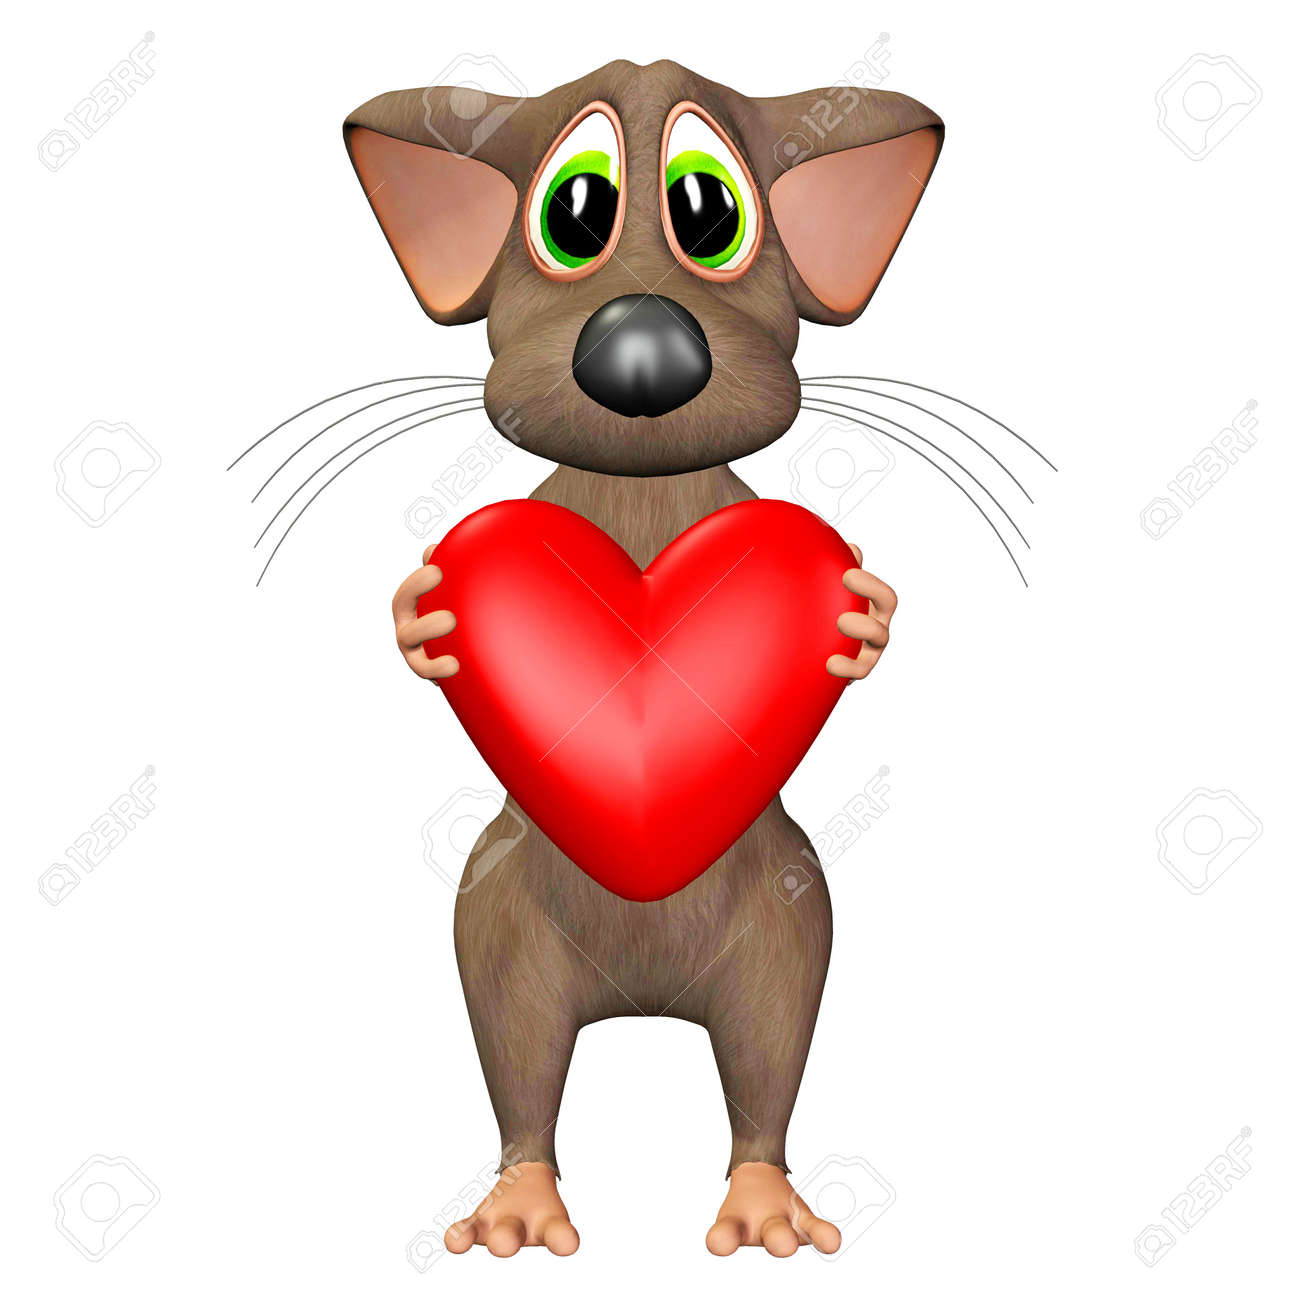 Illustration of a mouse holding a heart isolated on a white background Stock Illustration - 12744891